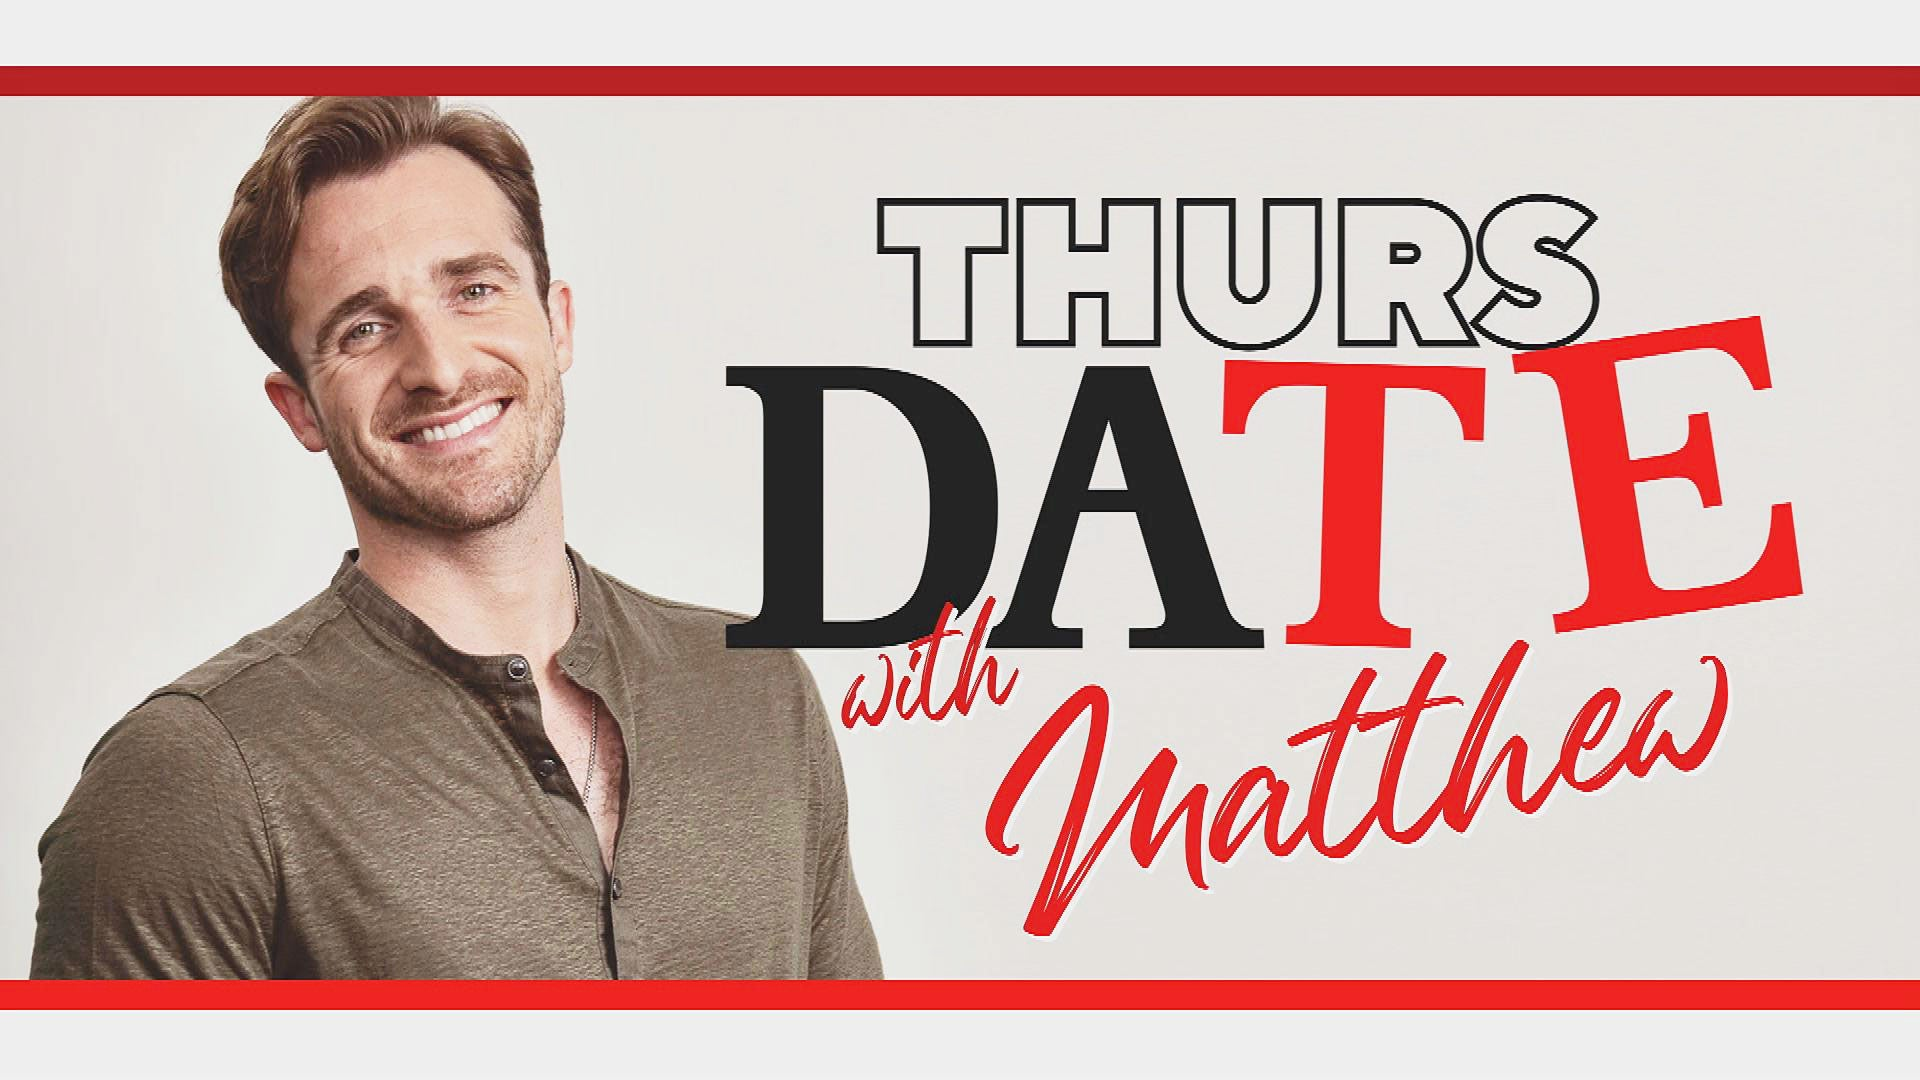 'ThursDATE': Matthew Hussey Shares 3 First Date Lines That Slay (Exclusive)